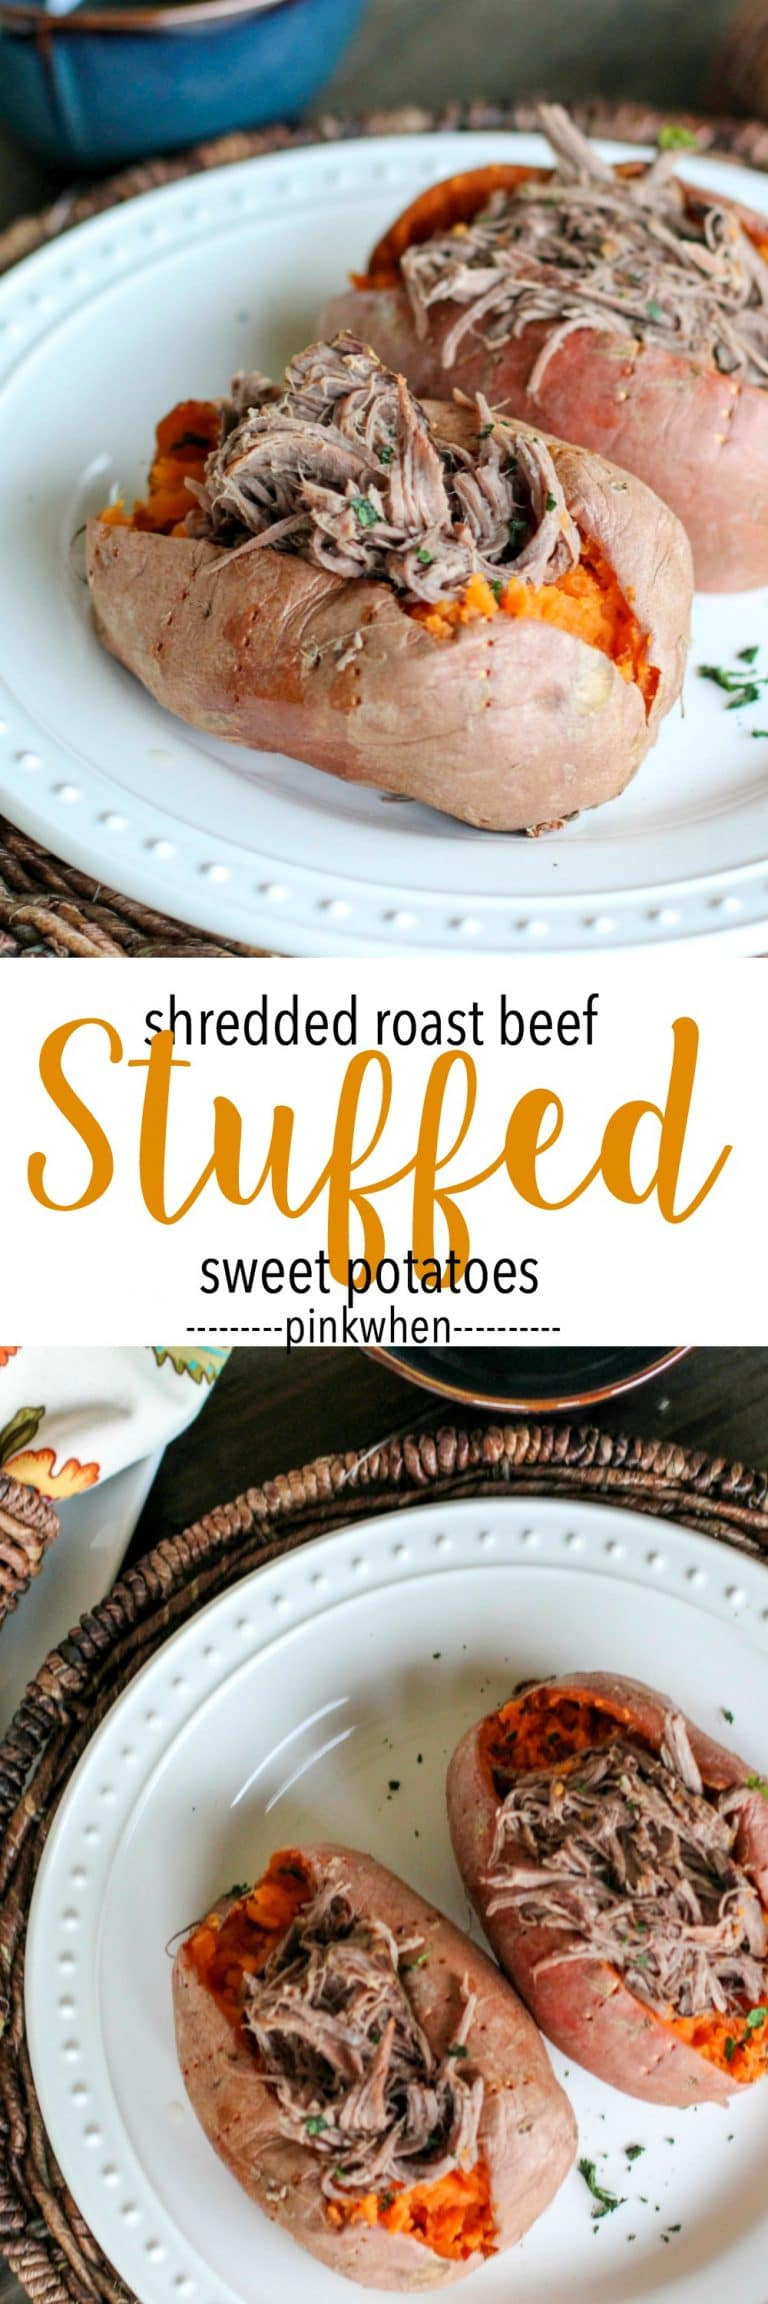 Shredded Roast Beef Stuffed Sweet Potatoes - Whole 30, PALEO, Simple Fit Forty